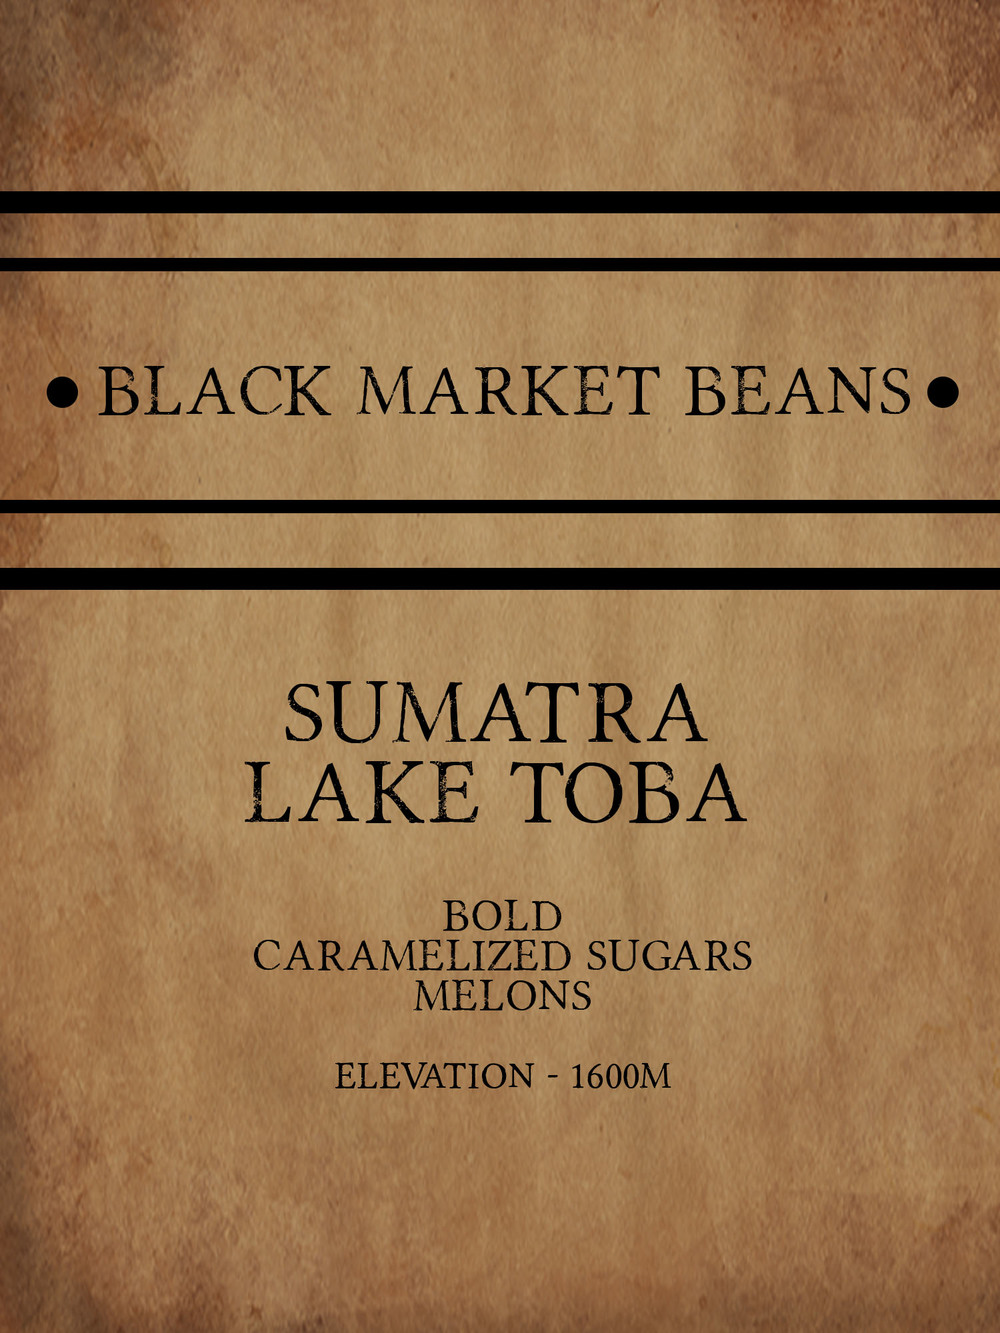 coffee_Sumatra_LakeToba.jpg